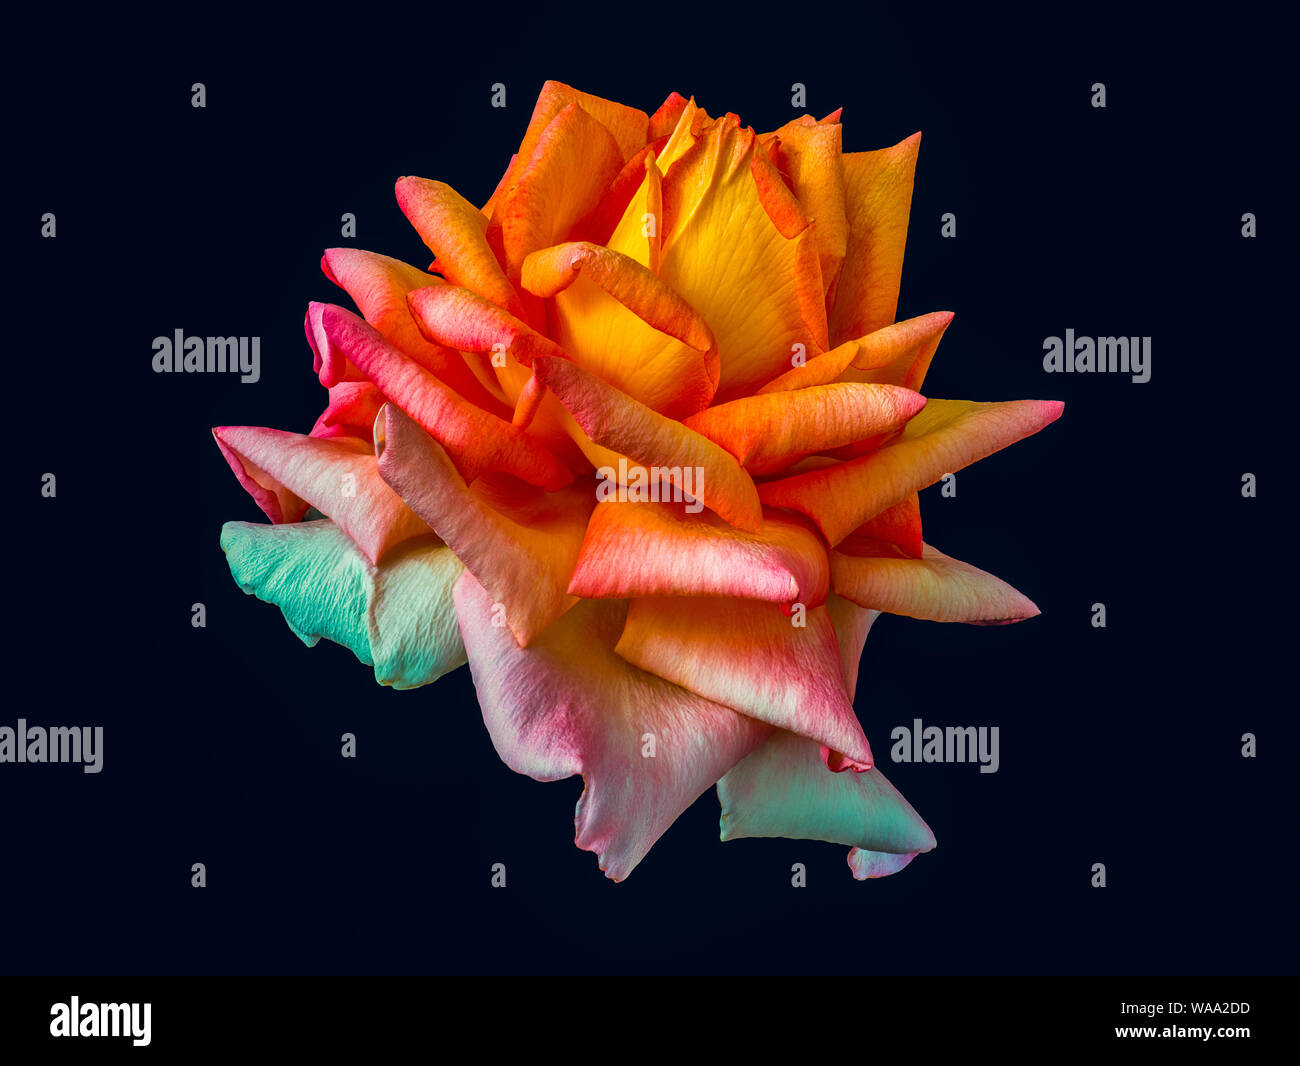 Rainbow colored isolated rose blossom macro fantasy on black background, a surrealistic vibrant colorful close-up of a single bloom Stock Photo